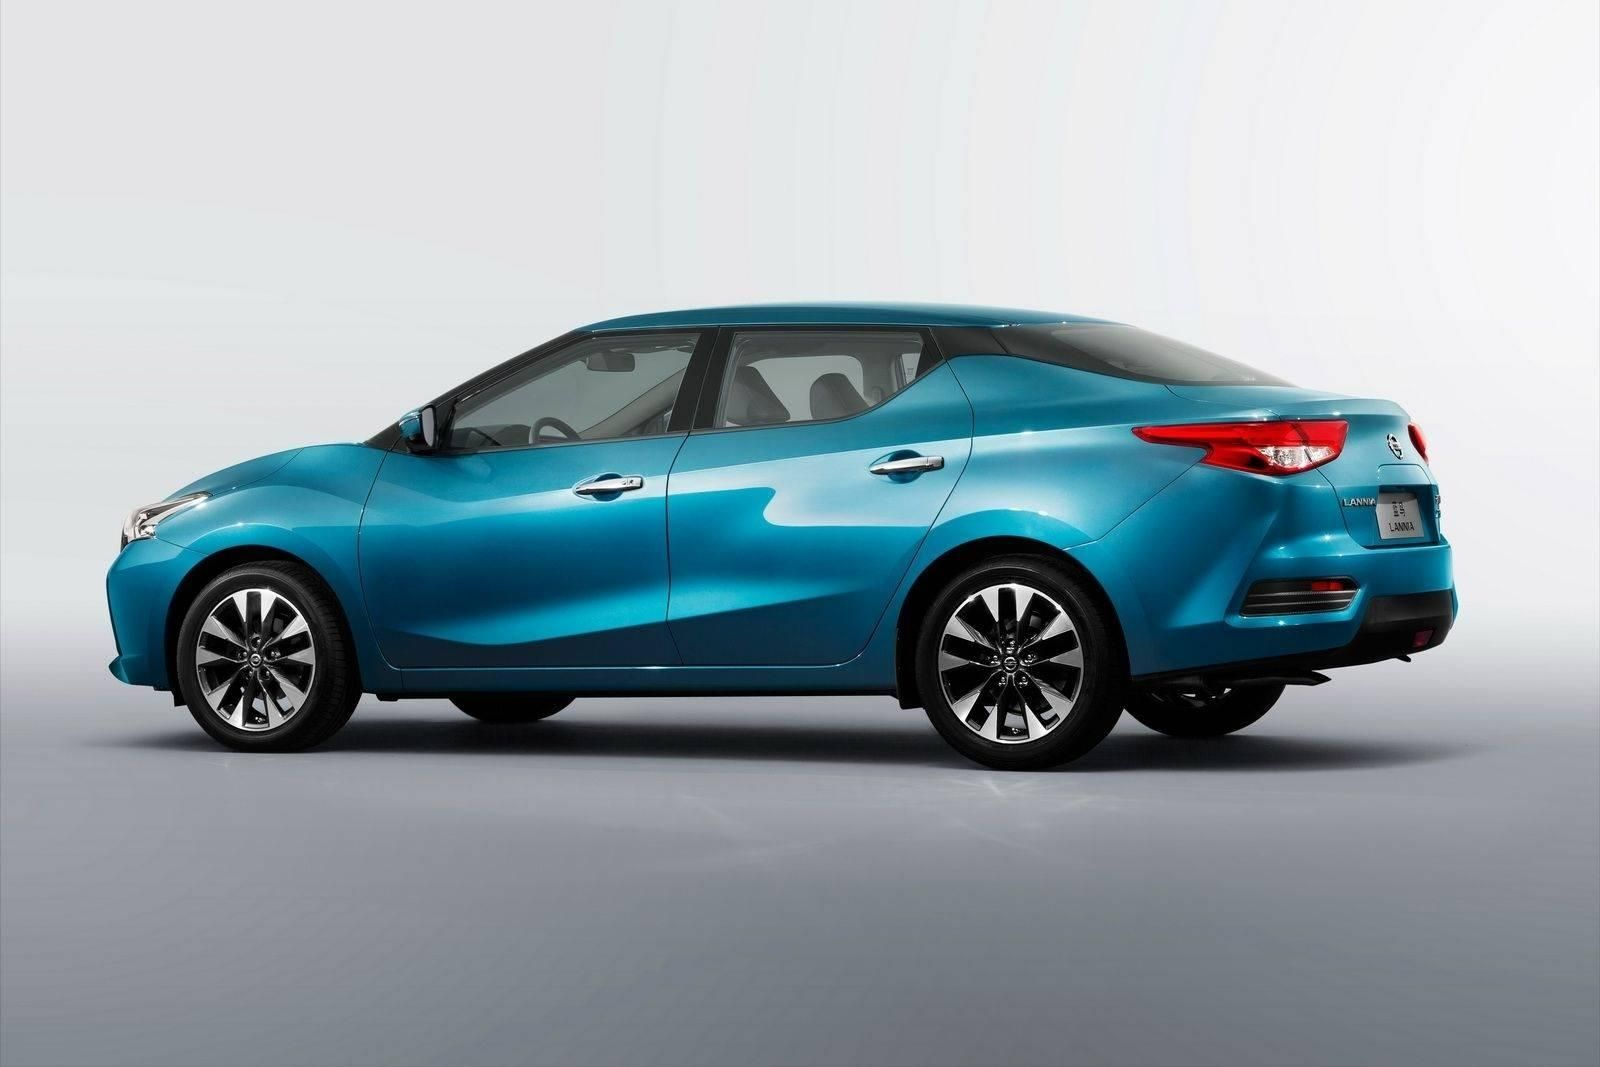 2019 Nissan Lannia Redesign And Price Car 2018 2019